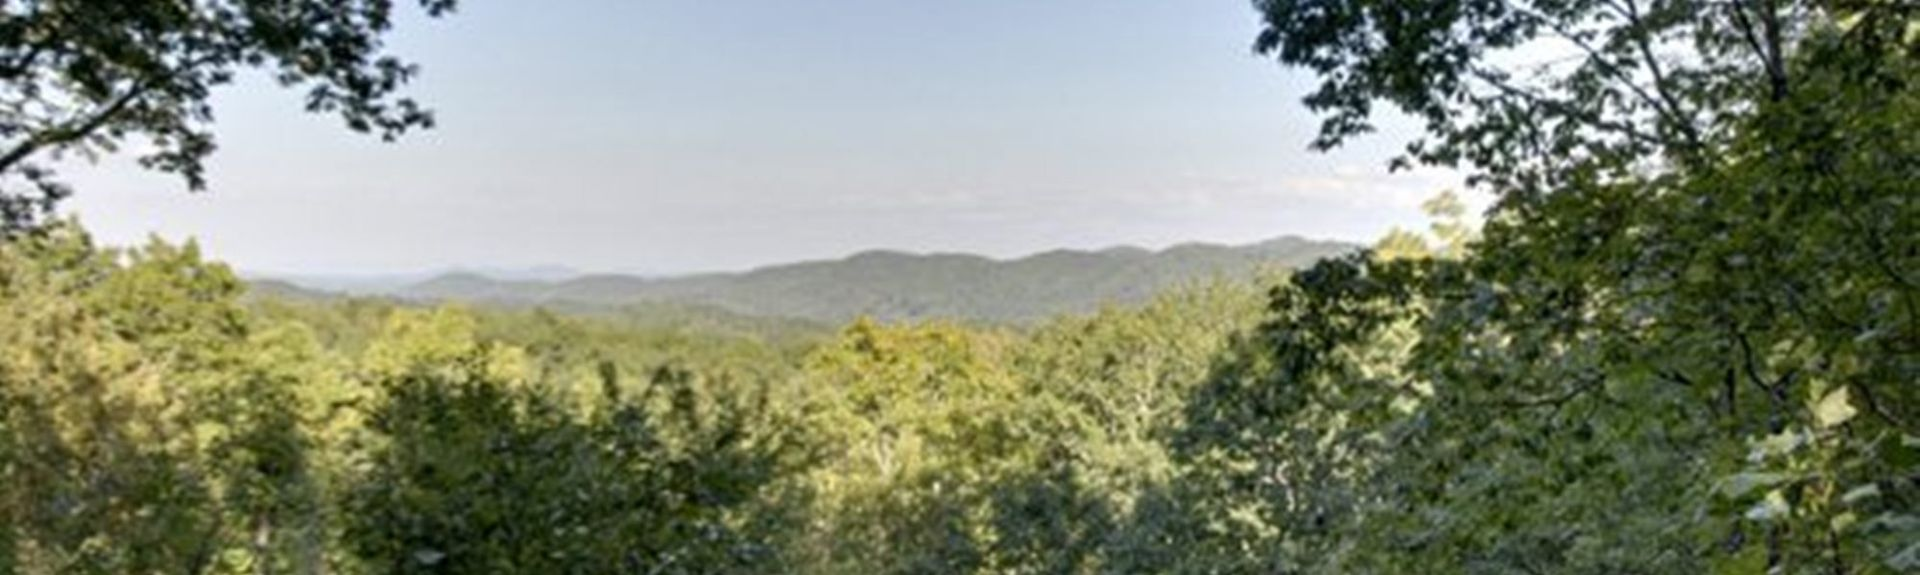 Vrbo | North Georgia Mountains, US Vacation Rentals: cabin